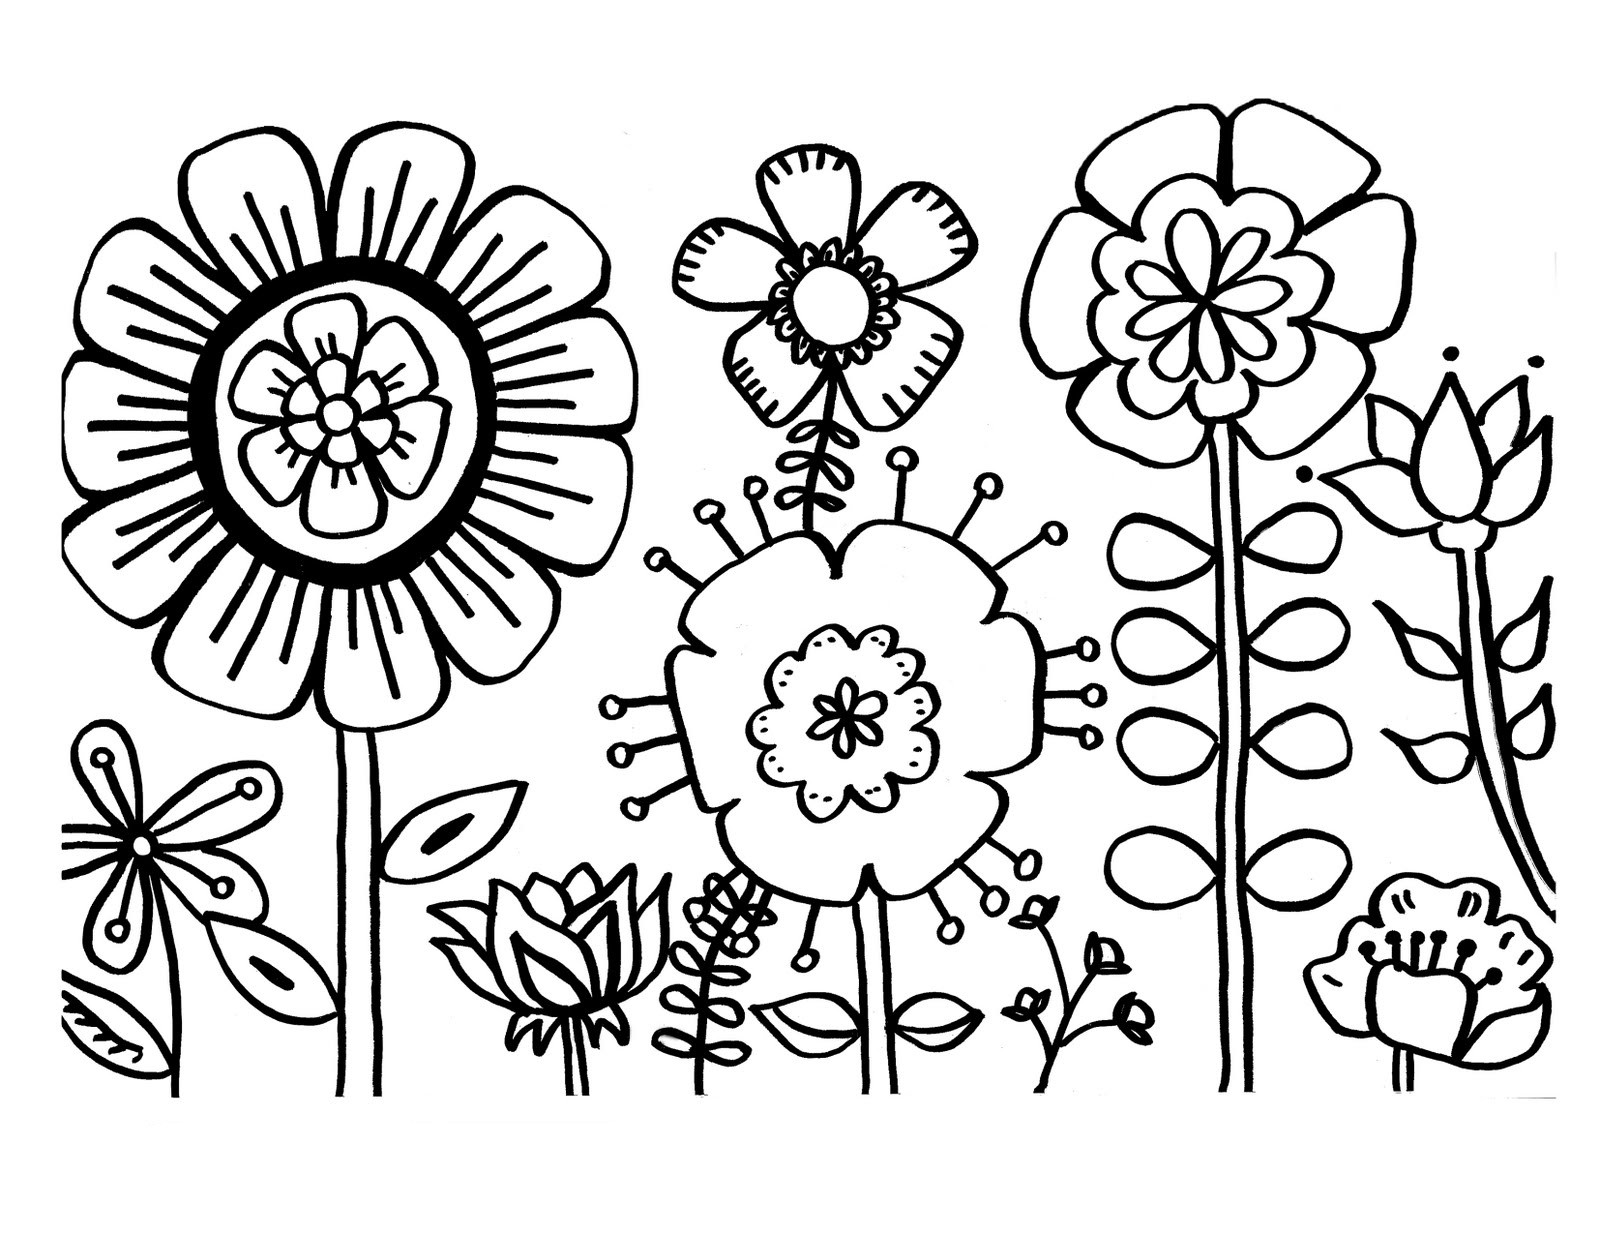 Coloring Pages Of Flowers For Kids  Free Printable Flower Coloring Pages For Kids Best